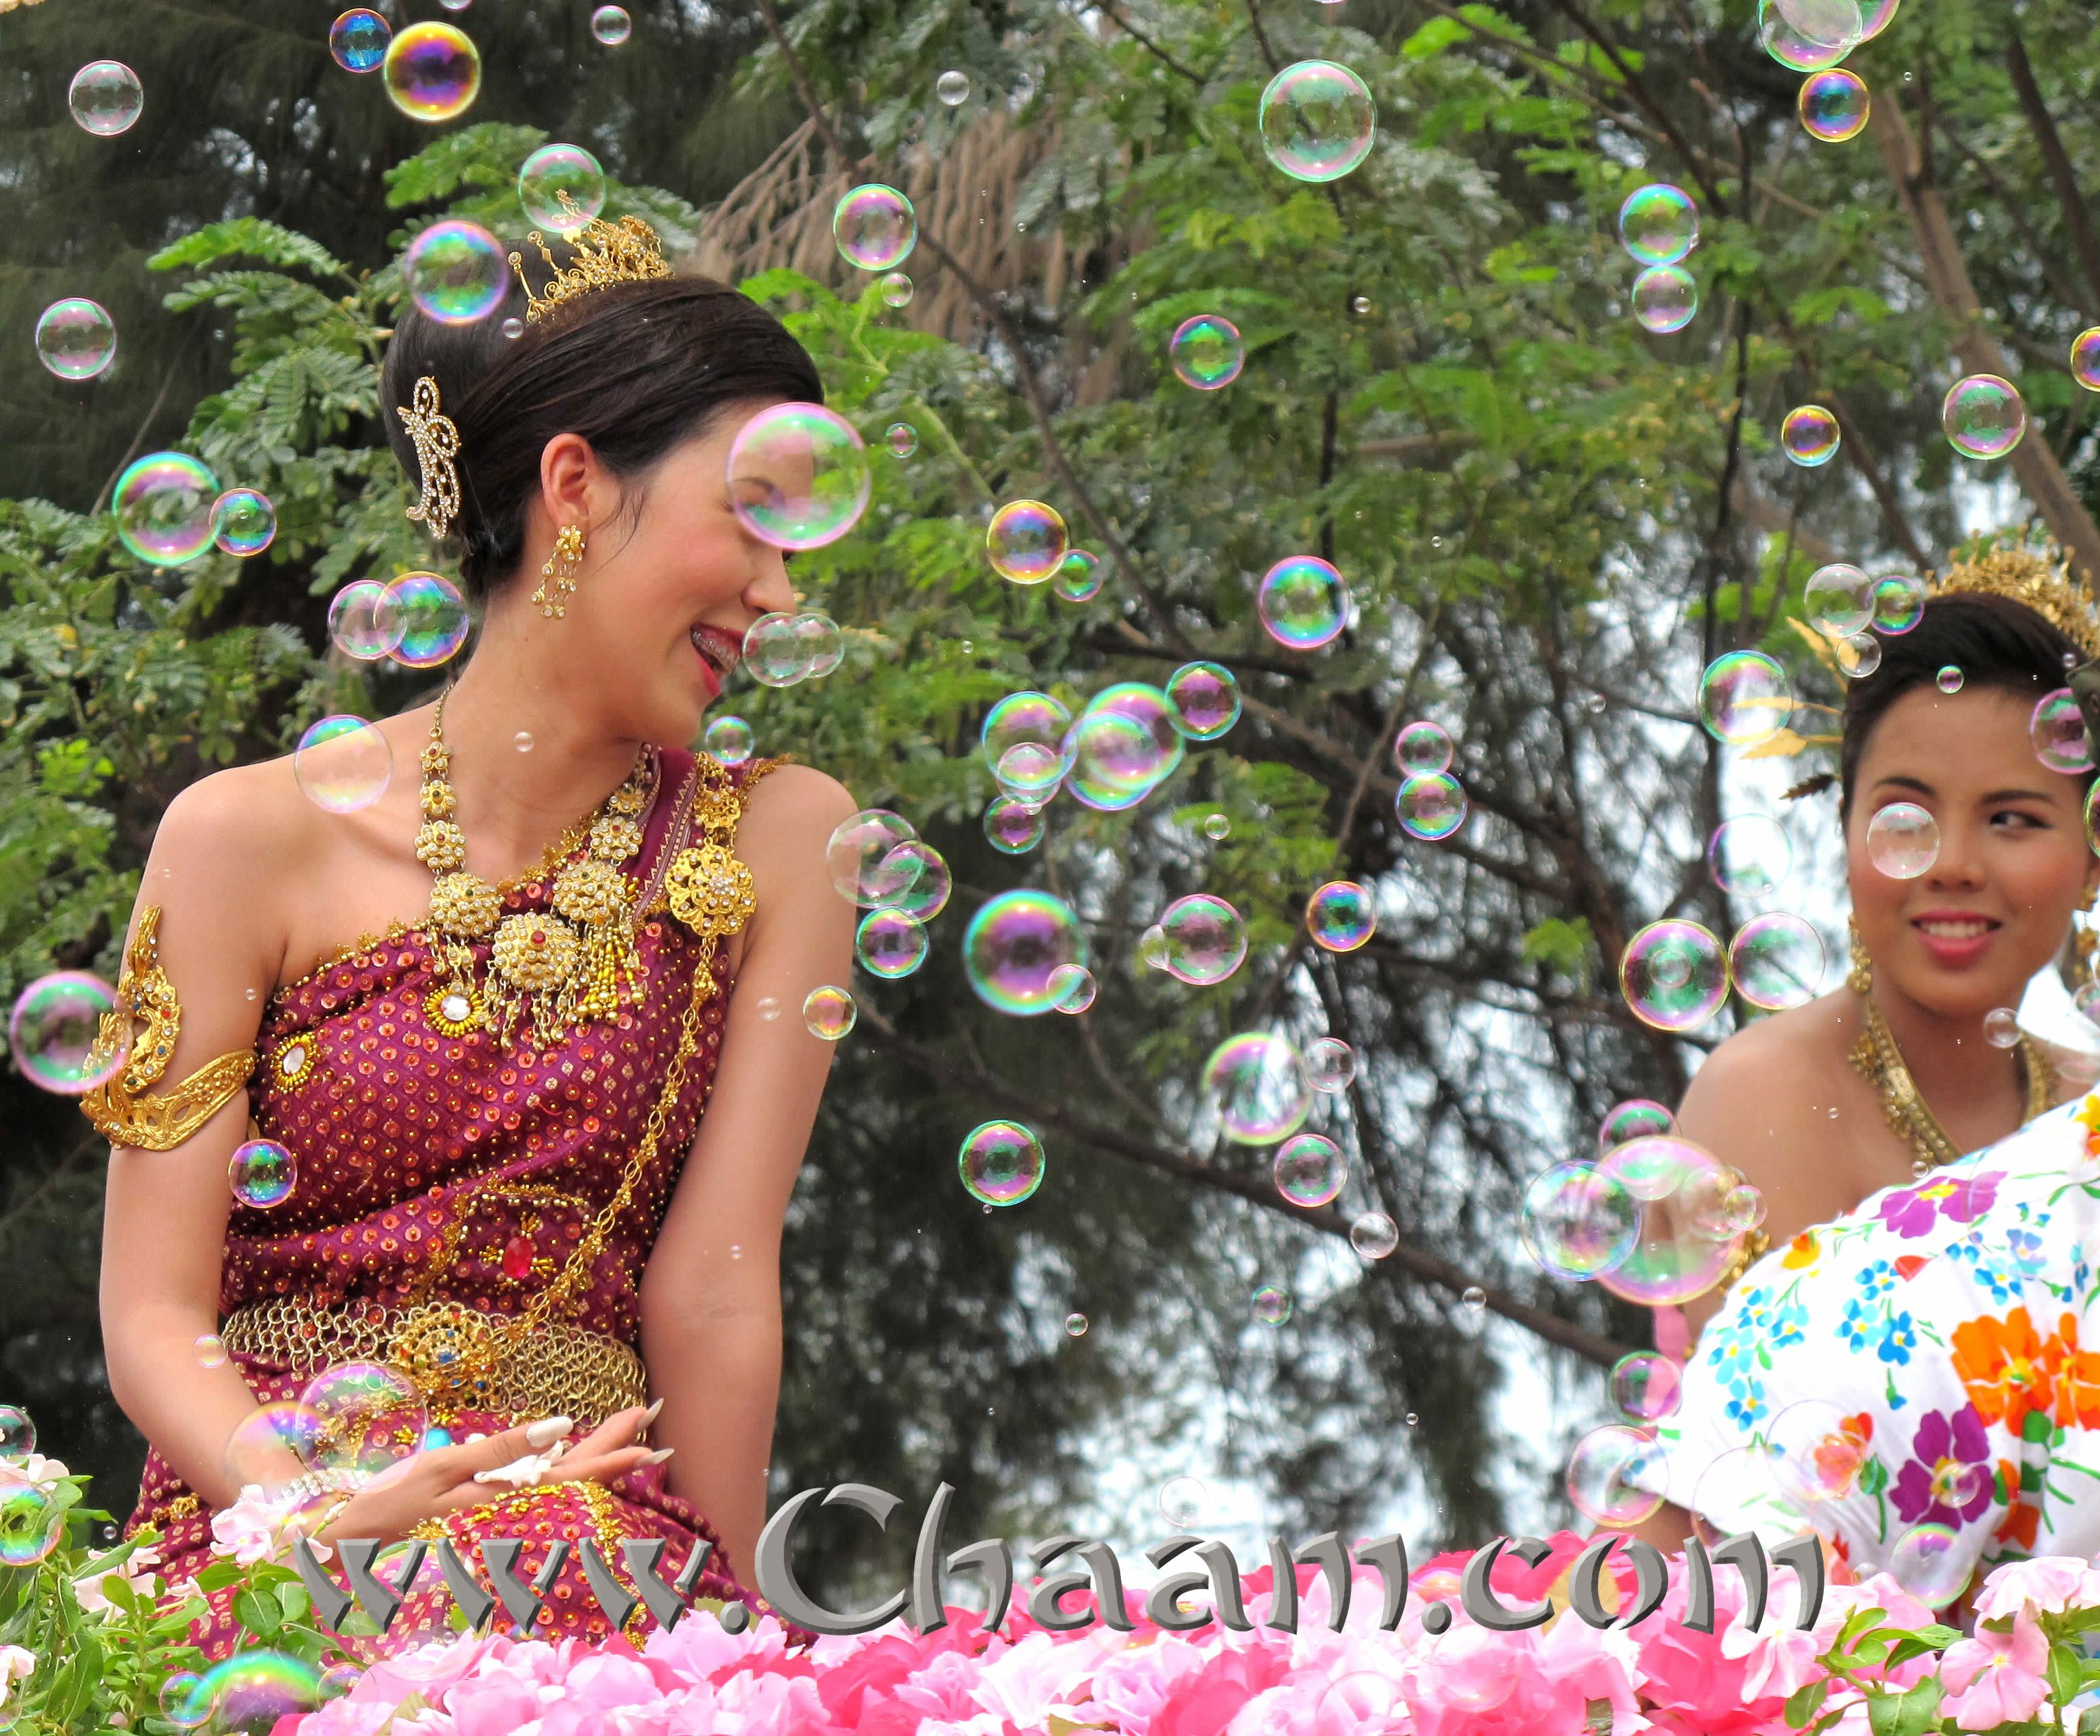 Thai Lady and bubbles